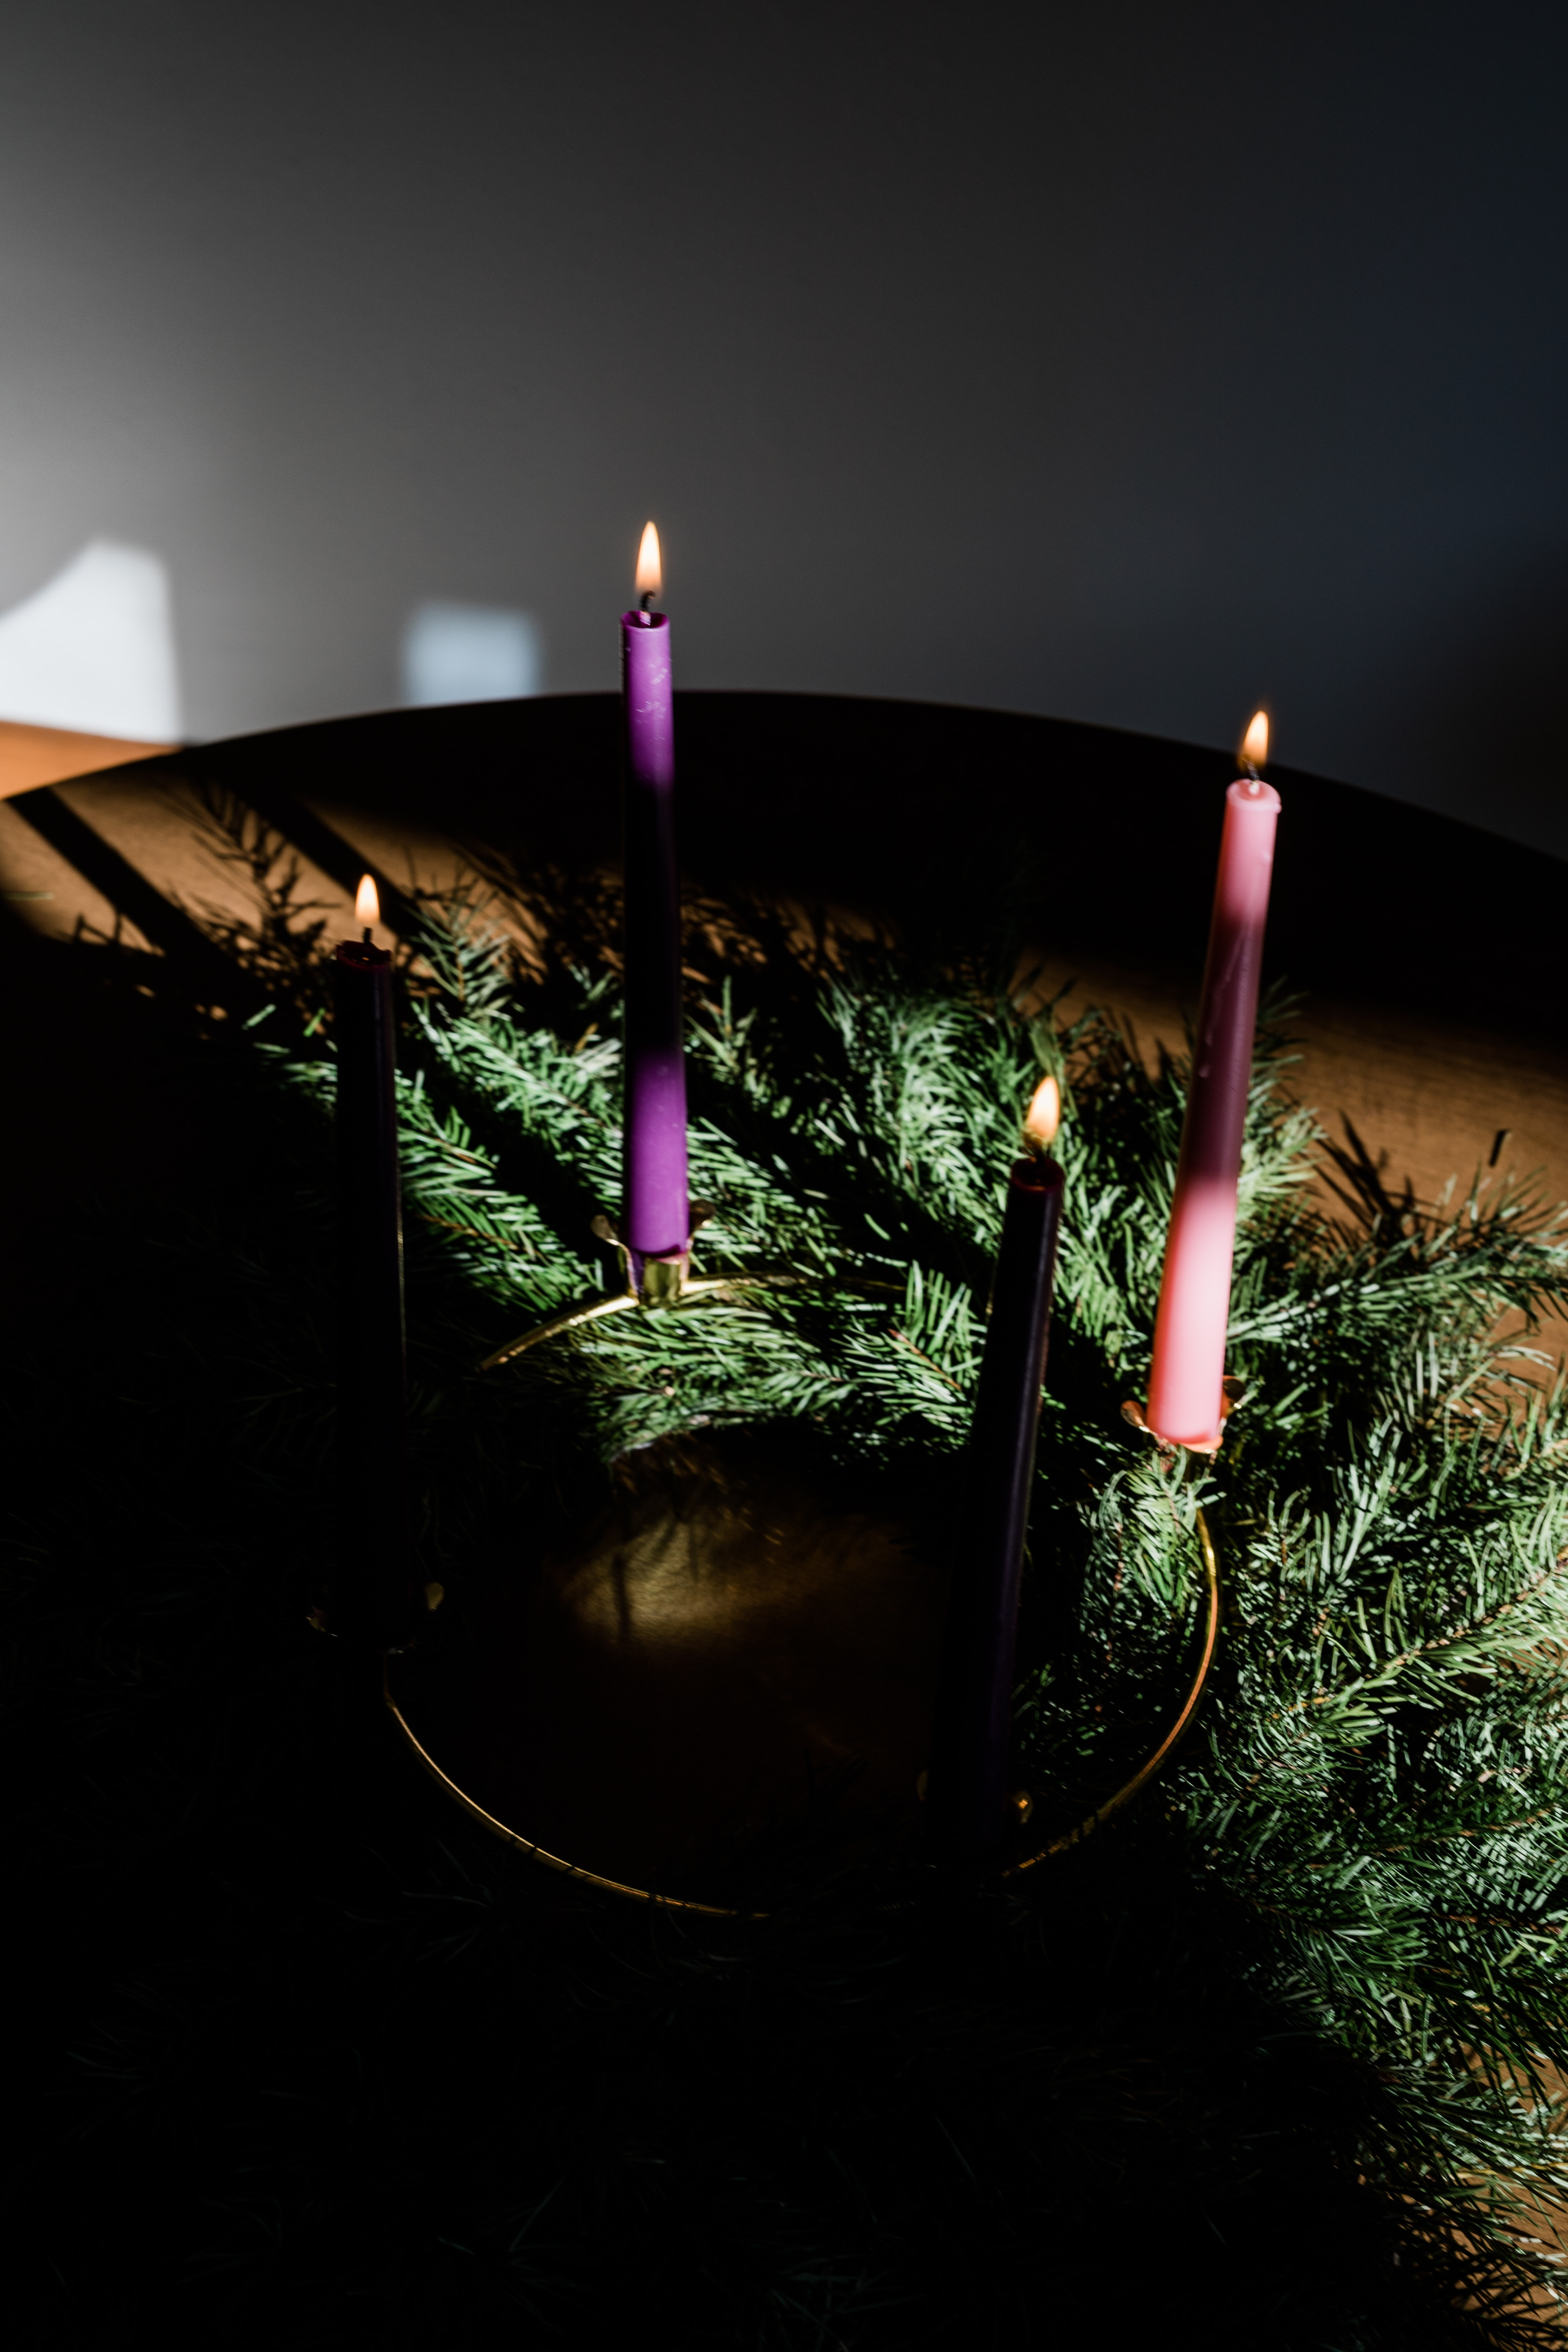 Advent: A Season of Waiting